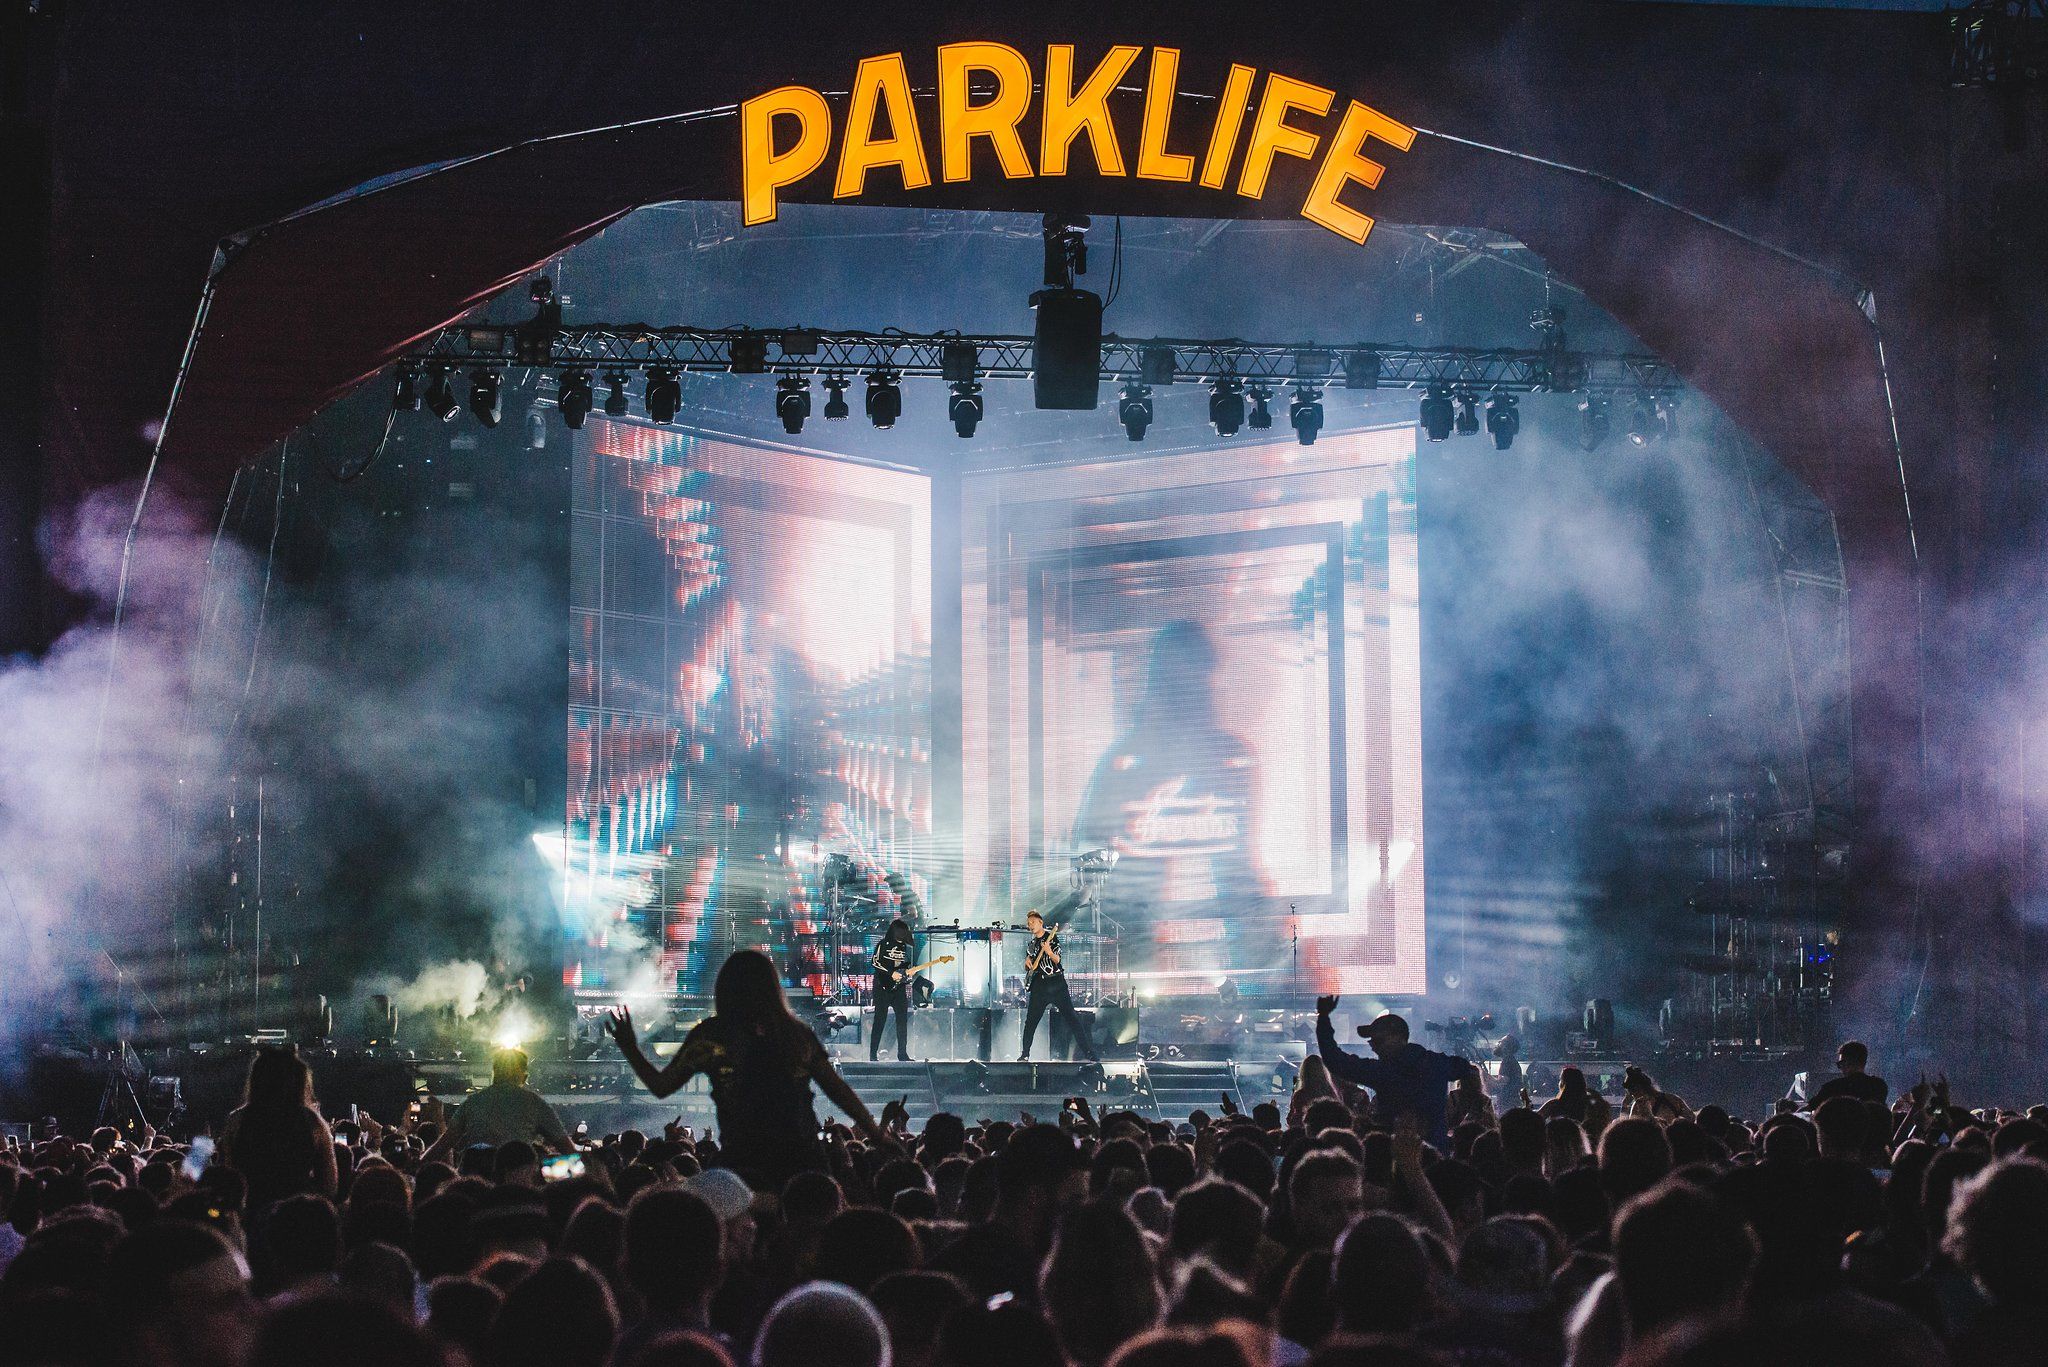 PARKLIFE-2018-FANATIC-Carolina Faruolo-180609222913 [Web]